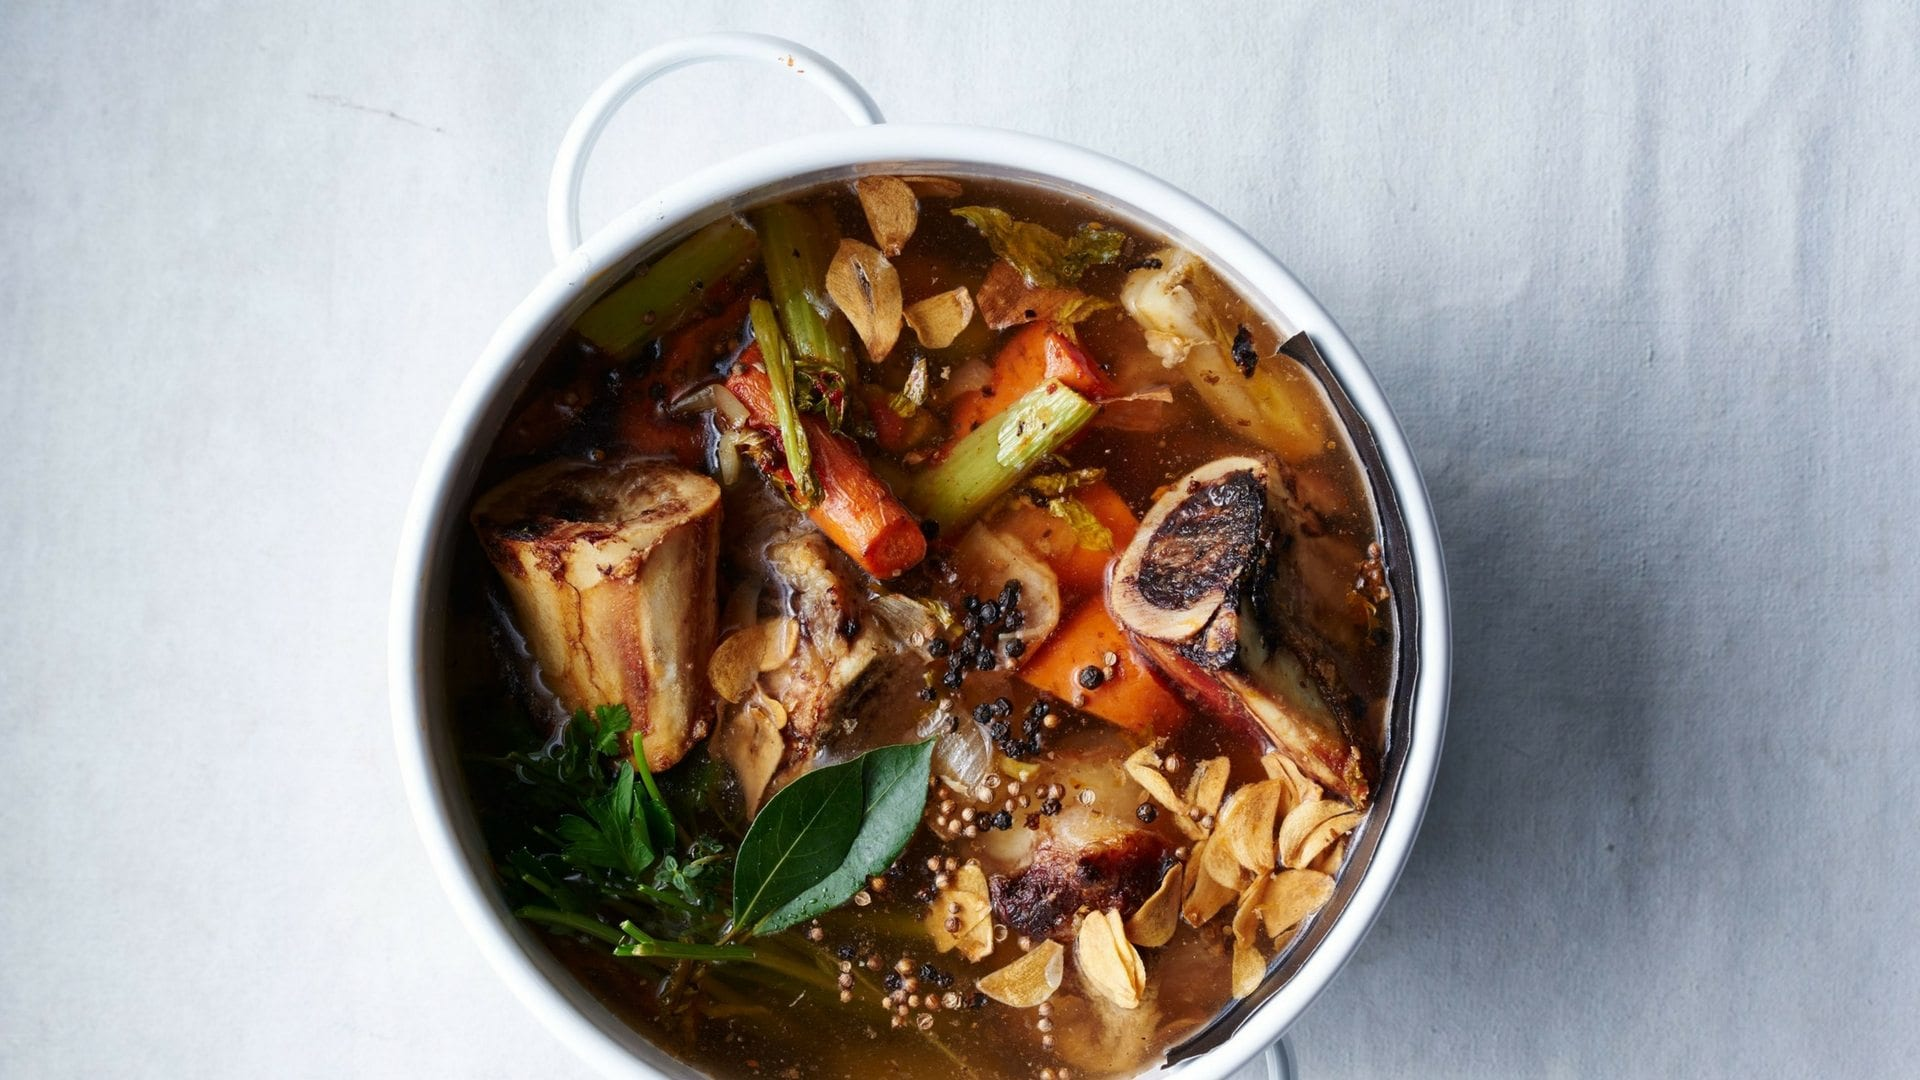 beef bone broth, broth, winter, soups, stews, beef, cooking, recipes, eat clean, healthy, meal ideas, winter cooking, fall, harvest, eat clean, clean eating, quick meals